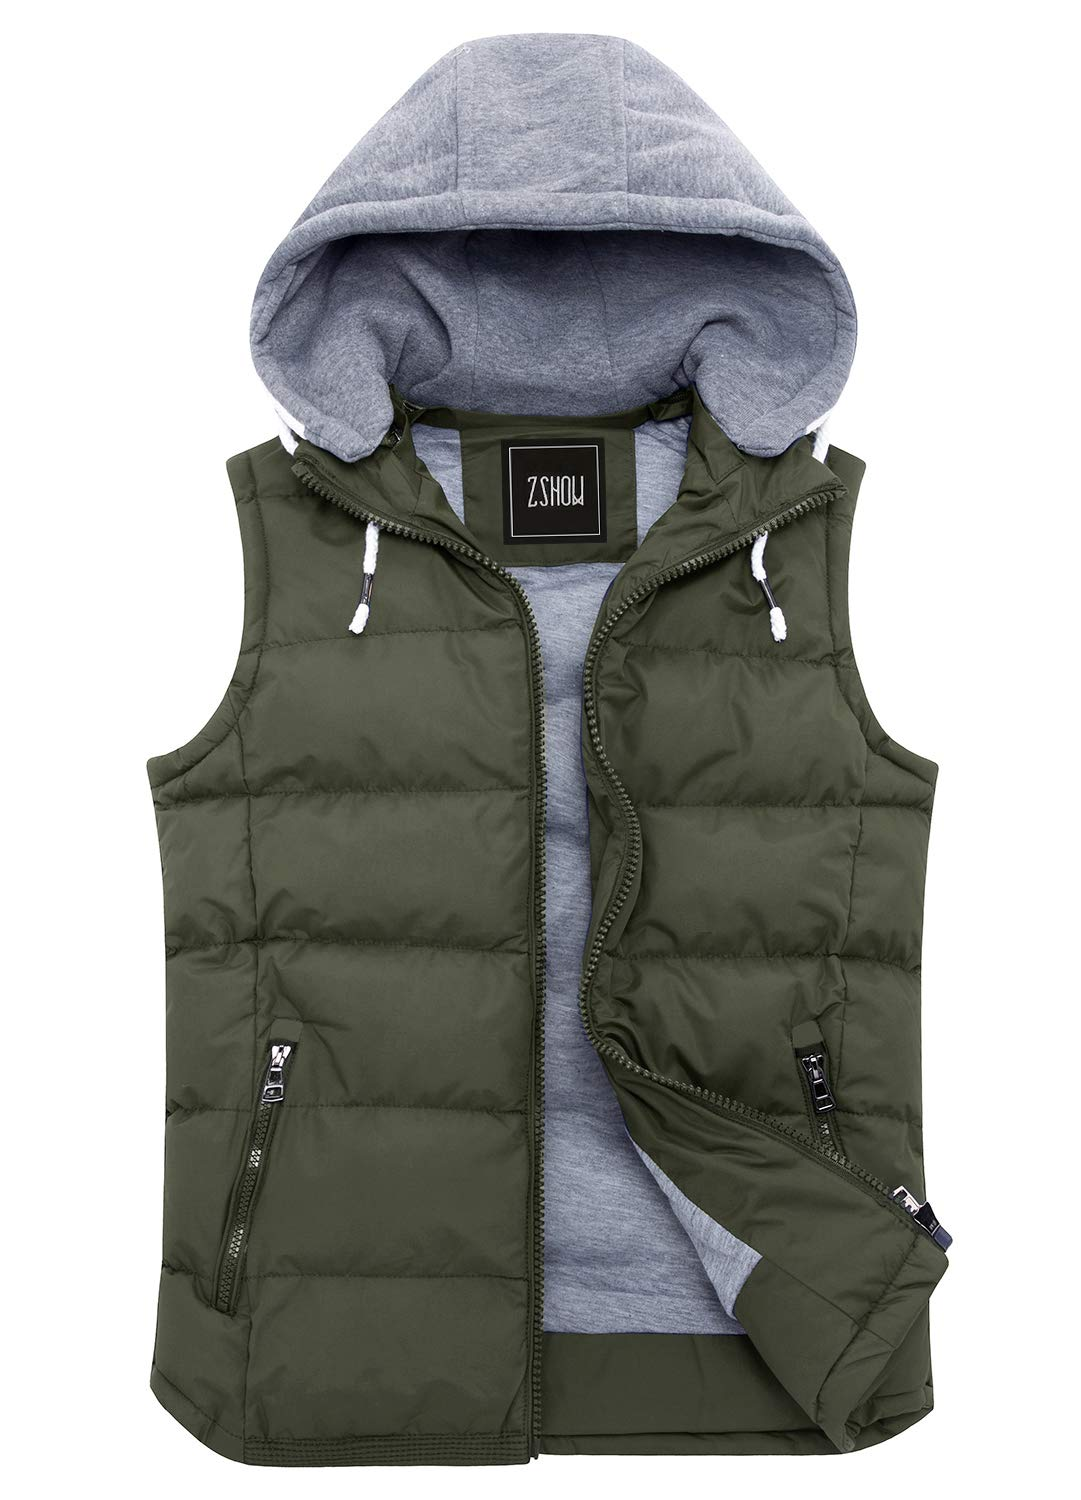 ZSHOW Women's Winter Padded Vest Removable Hooded Outwear Jacket (Army Green, Large) by ZSHOW